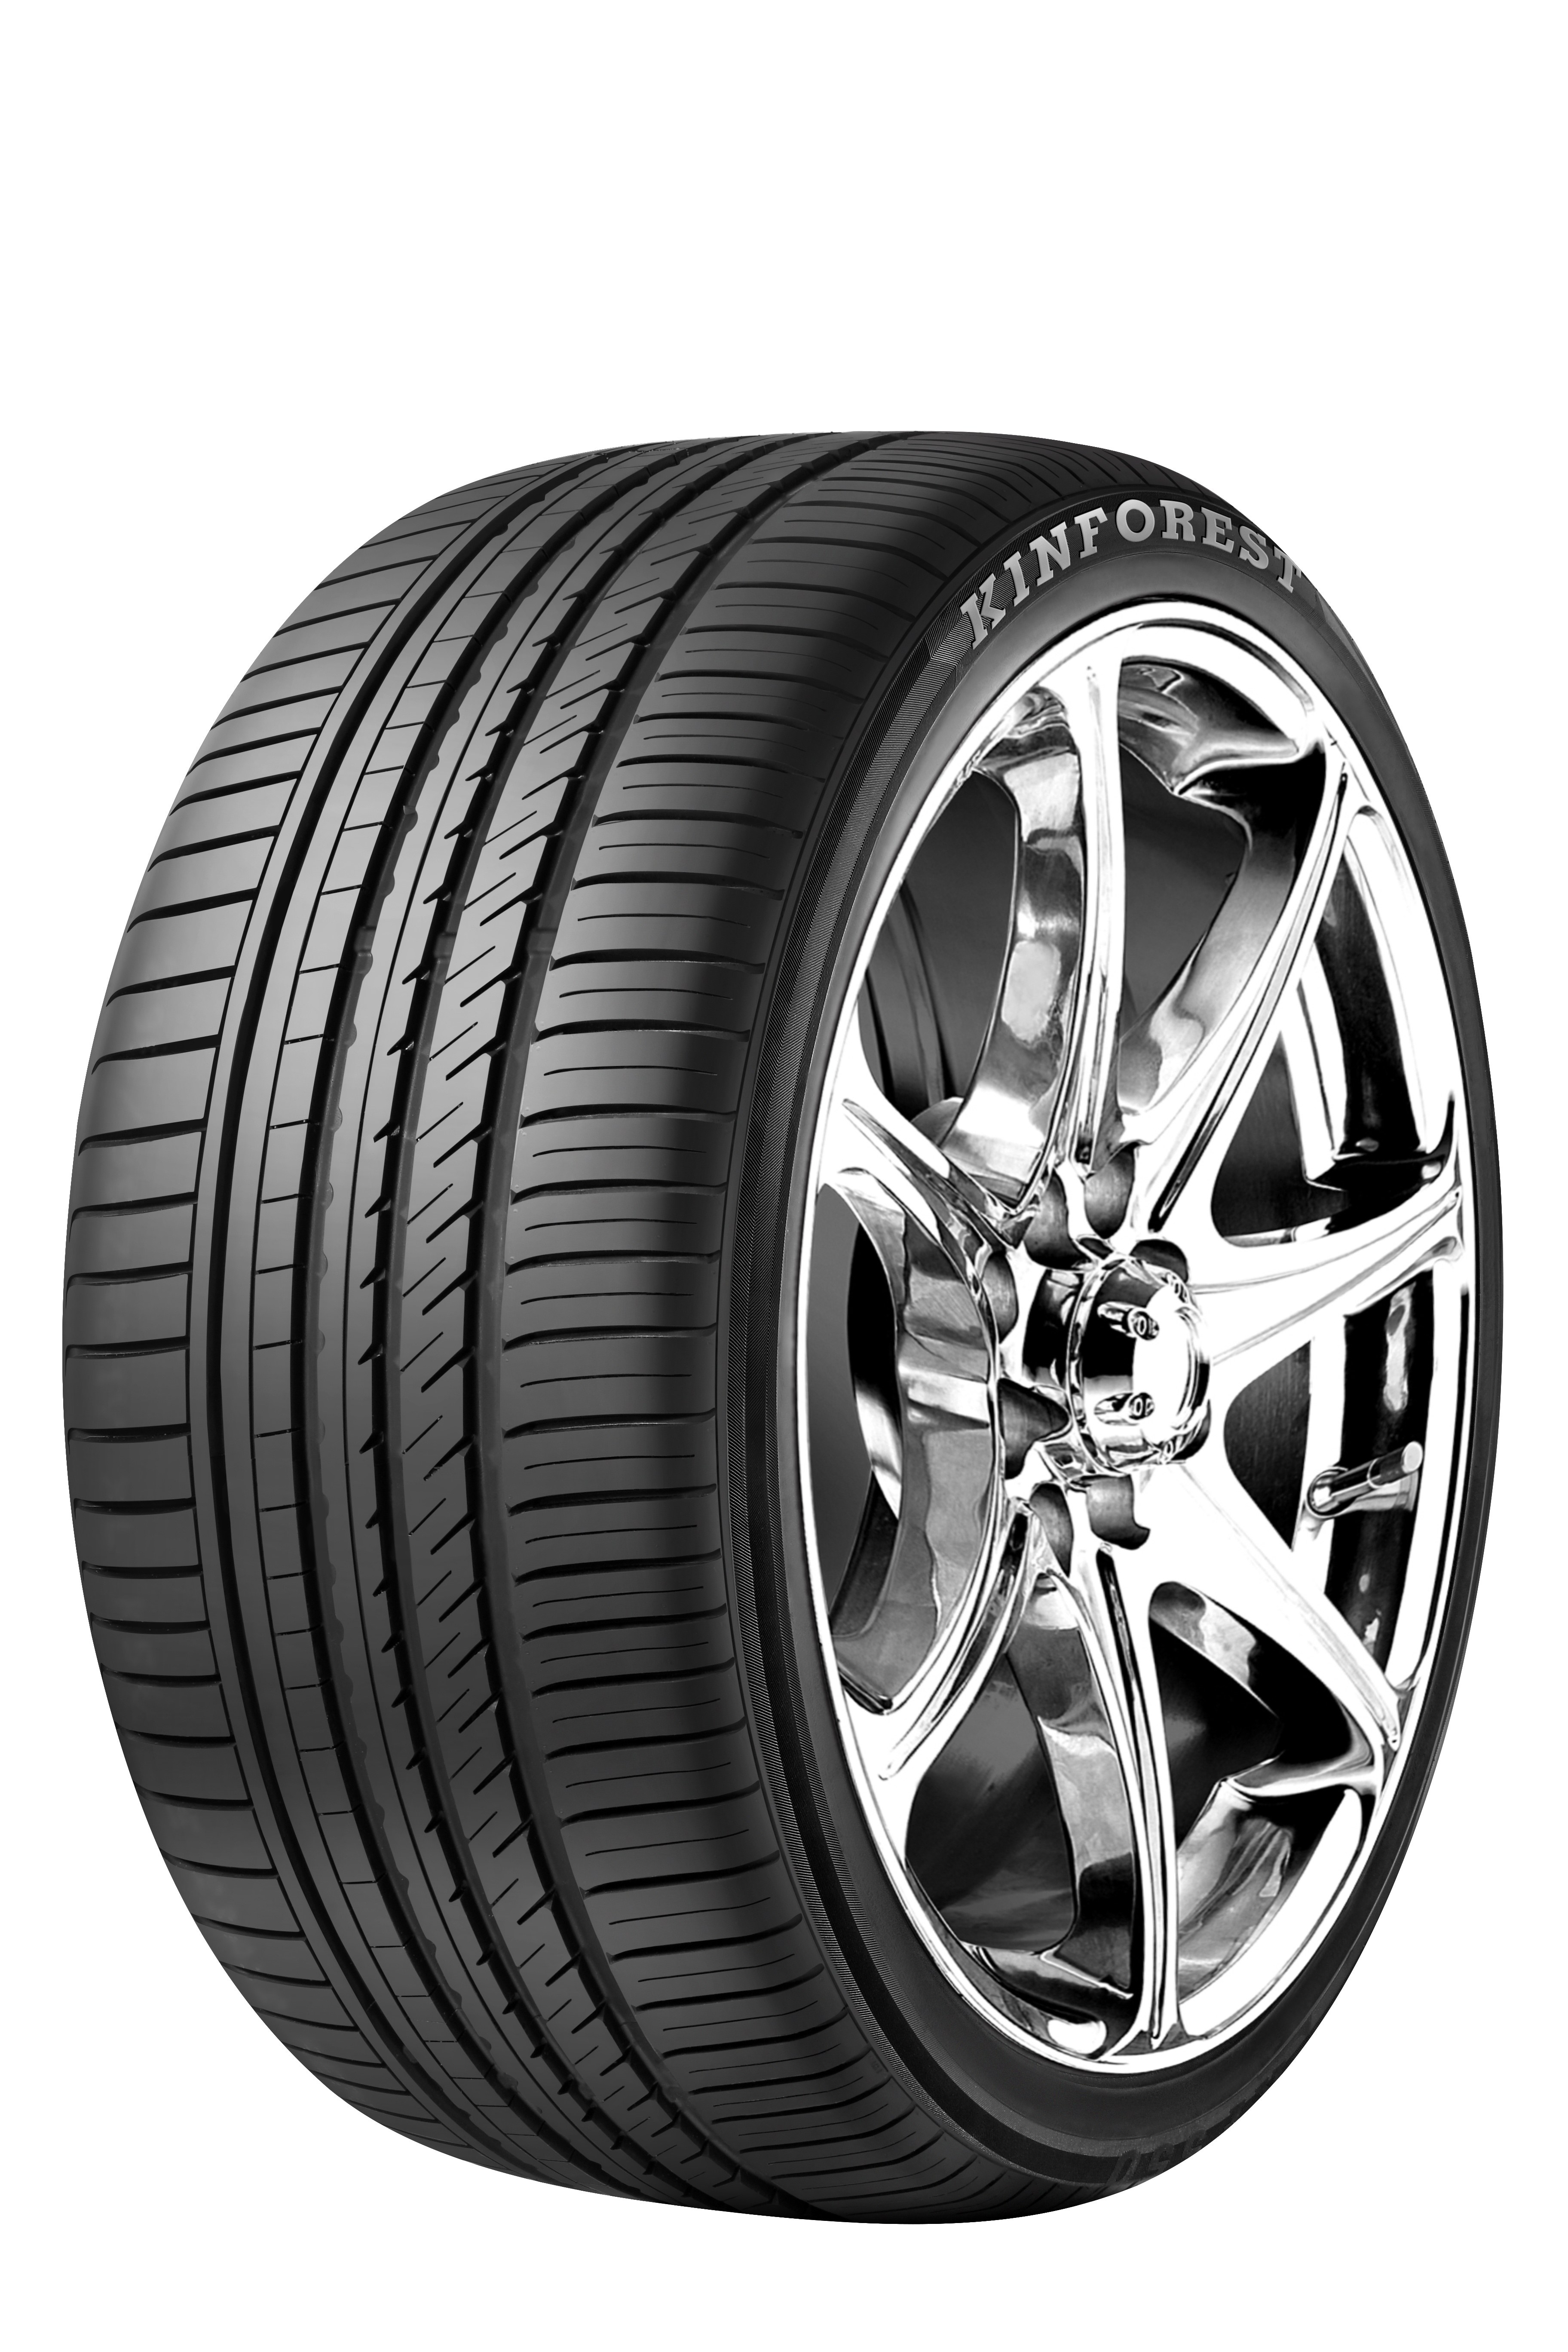 Kinforest KF550 285/40R20 104Y